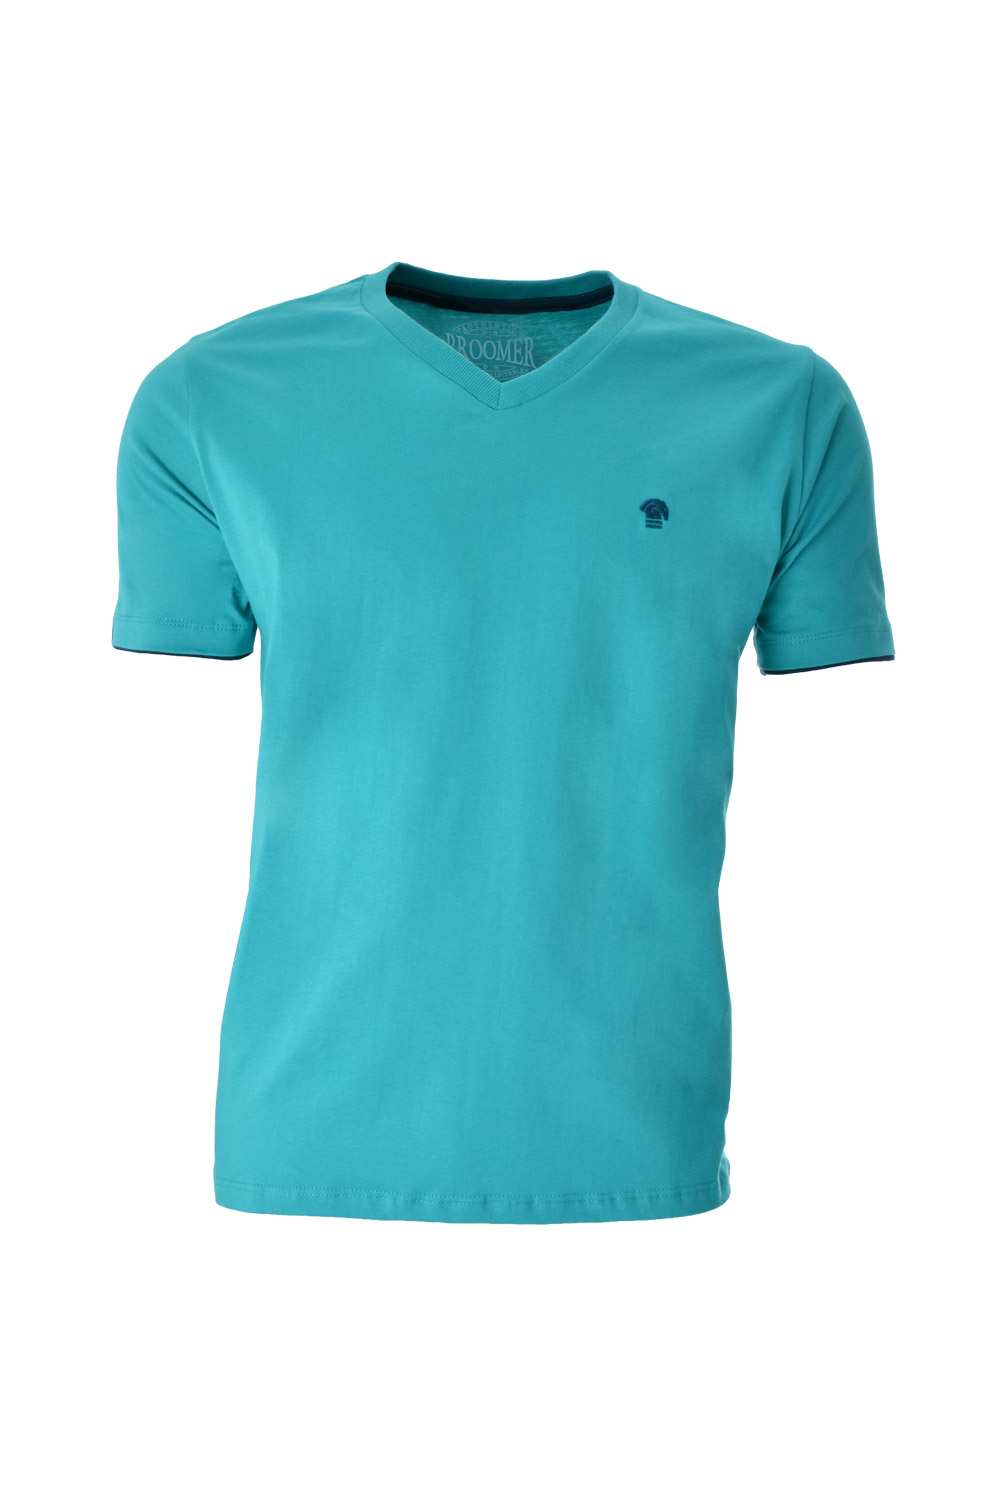 CAMISETA MC BLUES SUPER SLIM ALGODAO GOLA V LISO VERDE MEDIO